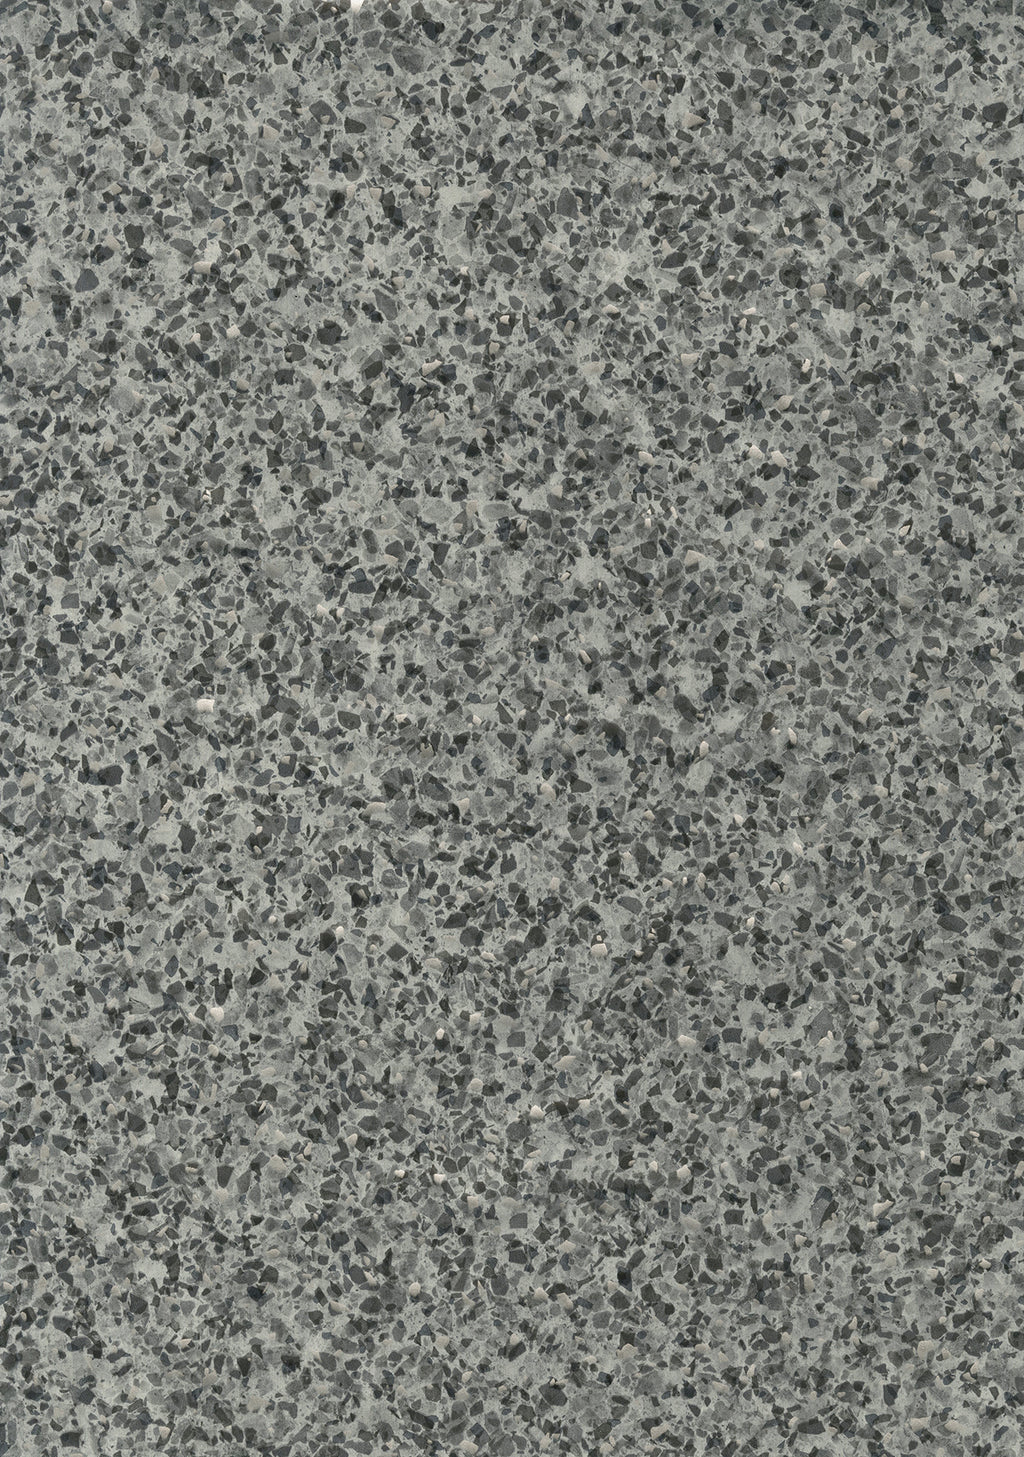 Terrazzo Silver Grey Adhesive Film-grey, silver and black